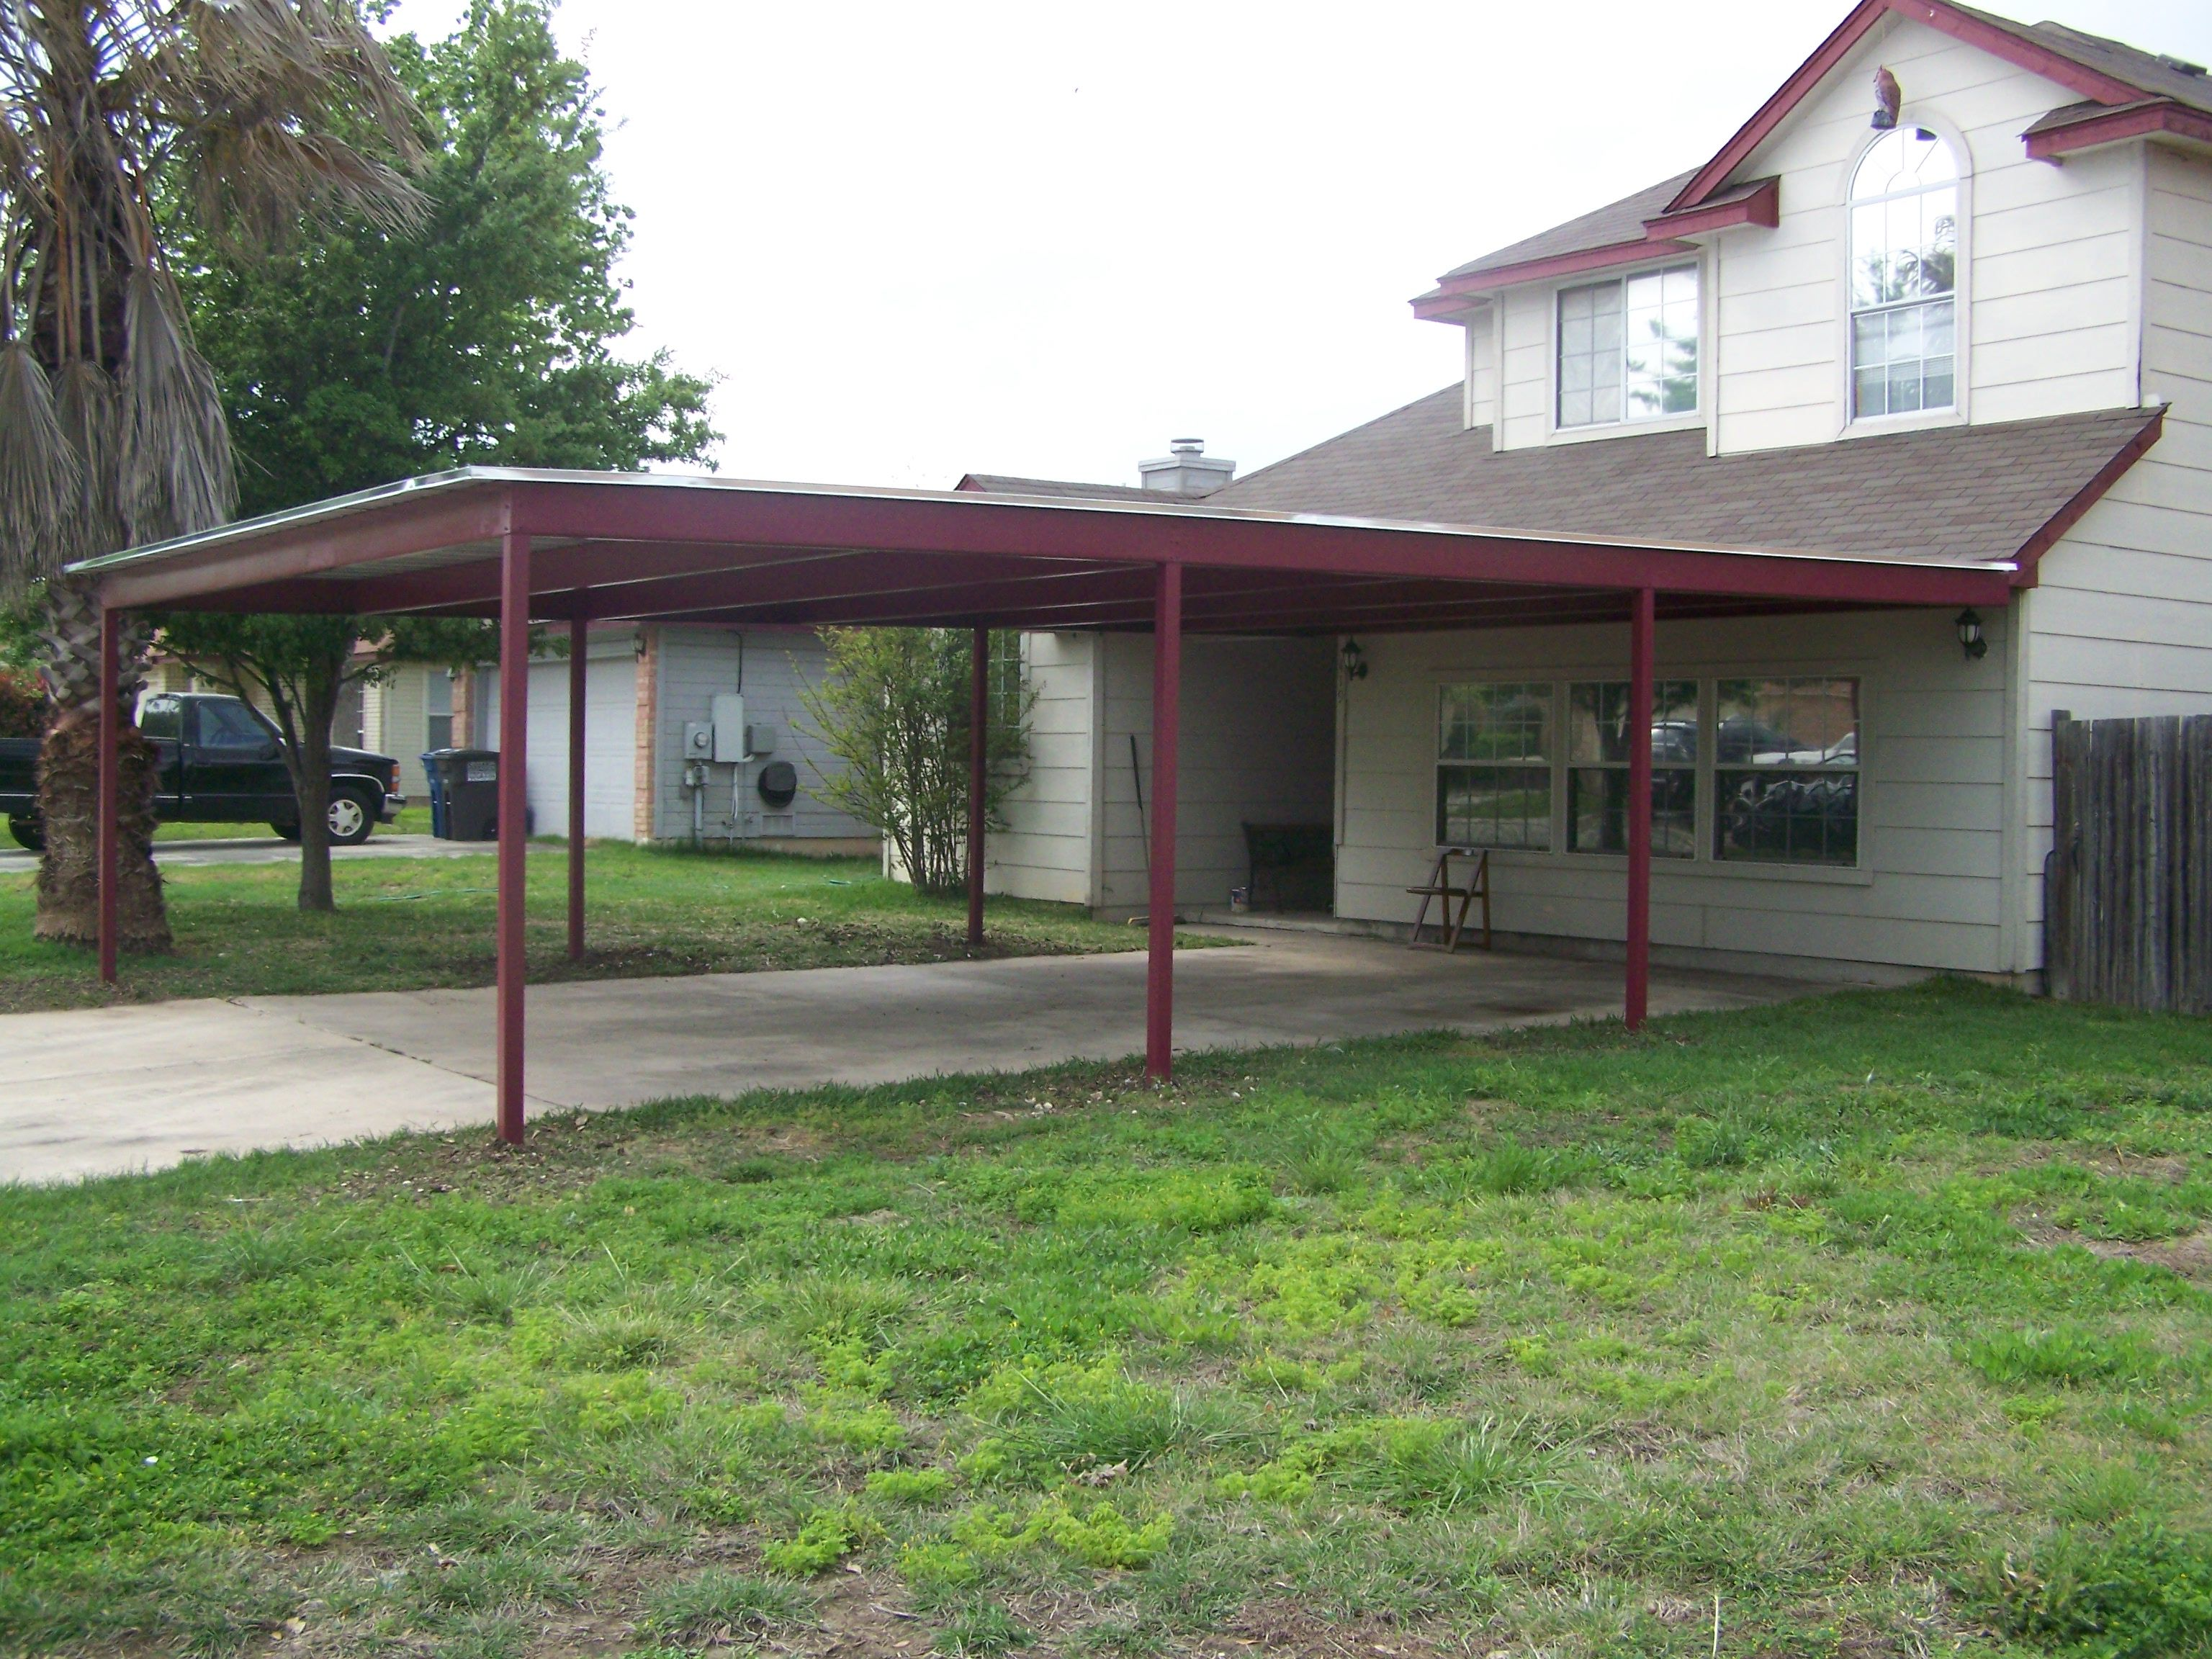 Custom metal carport and porch addition south san antonio custom metal carport and porch addition south san antonio diy solutioingenieria Image collections